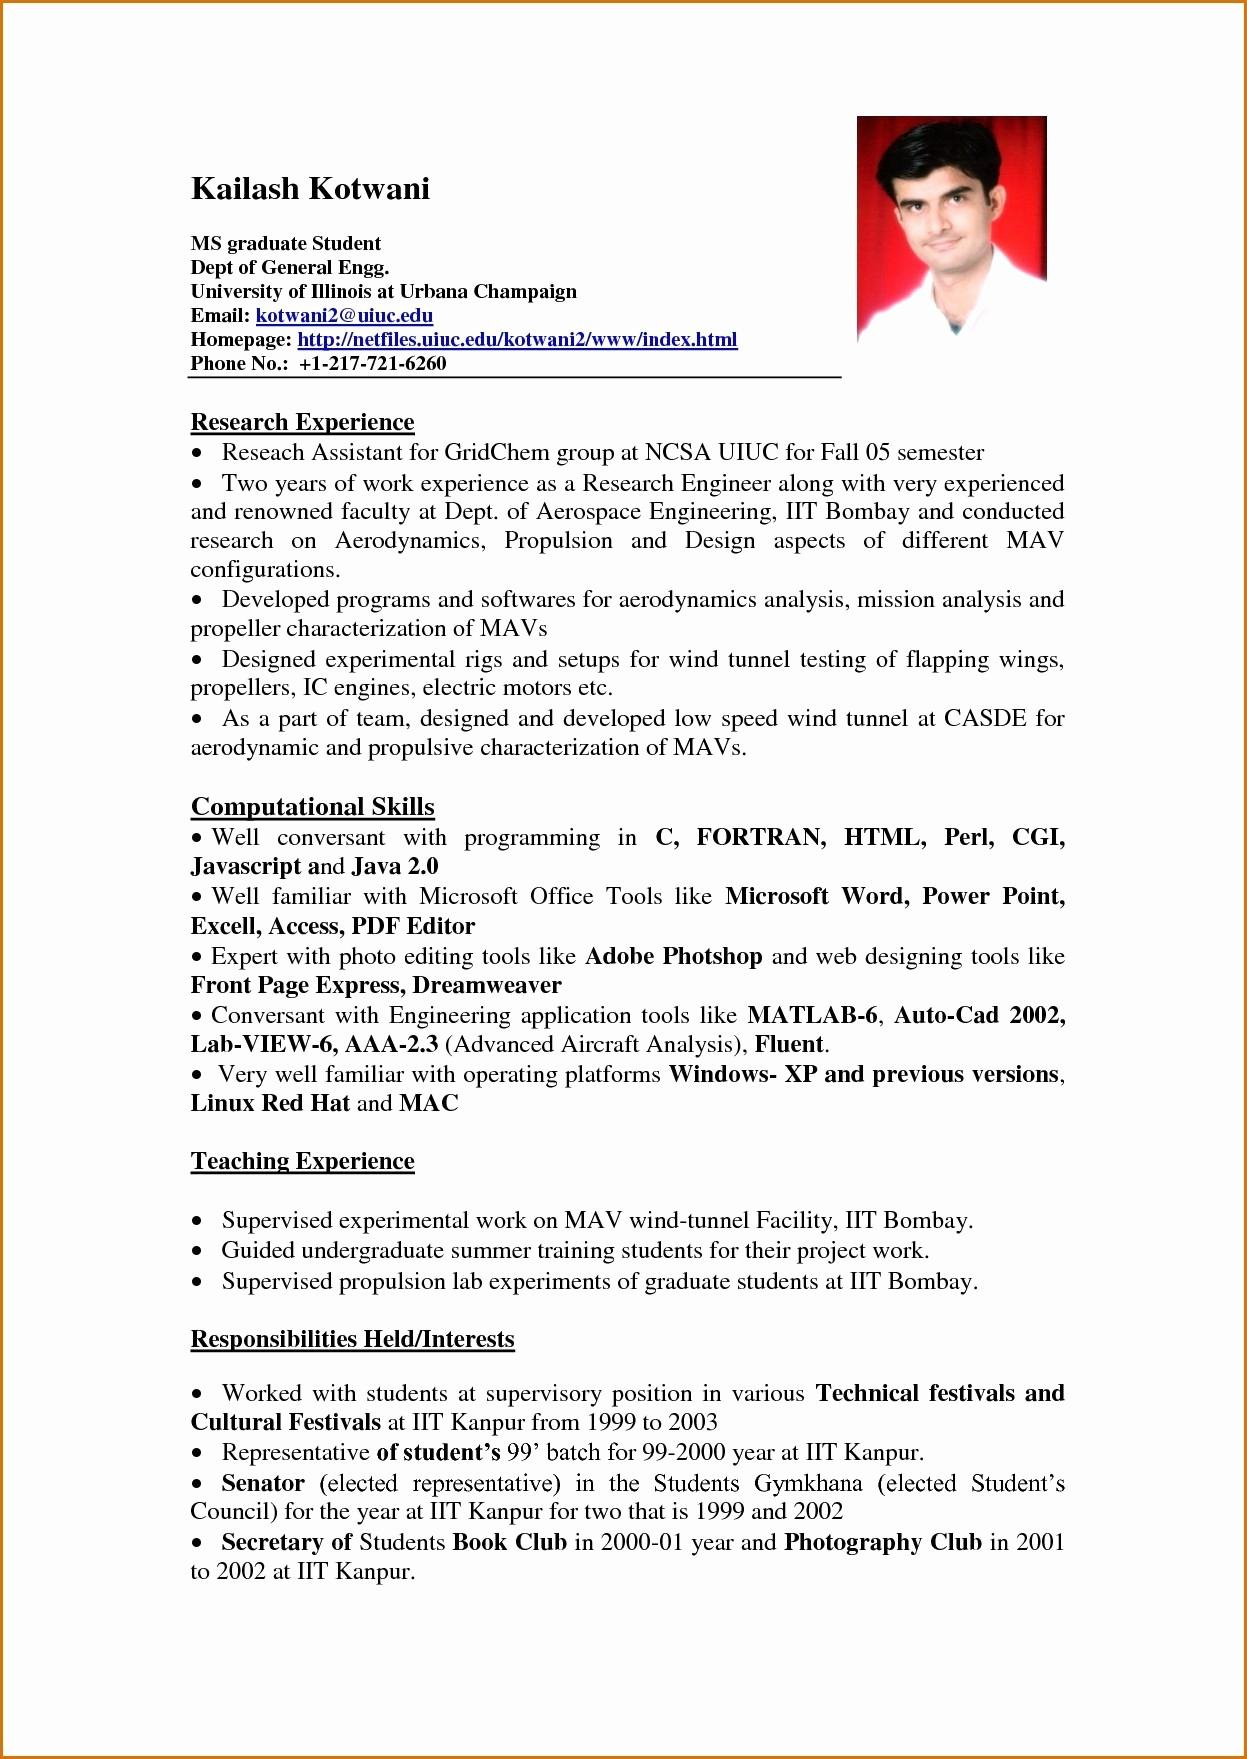 japanese resume template Collection-Sample Resume for Government Employment Unique Japanese Resume Template Fresh 51 Elegant Sample Resume Government 15-k